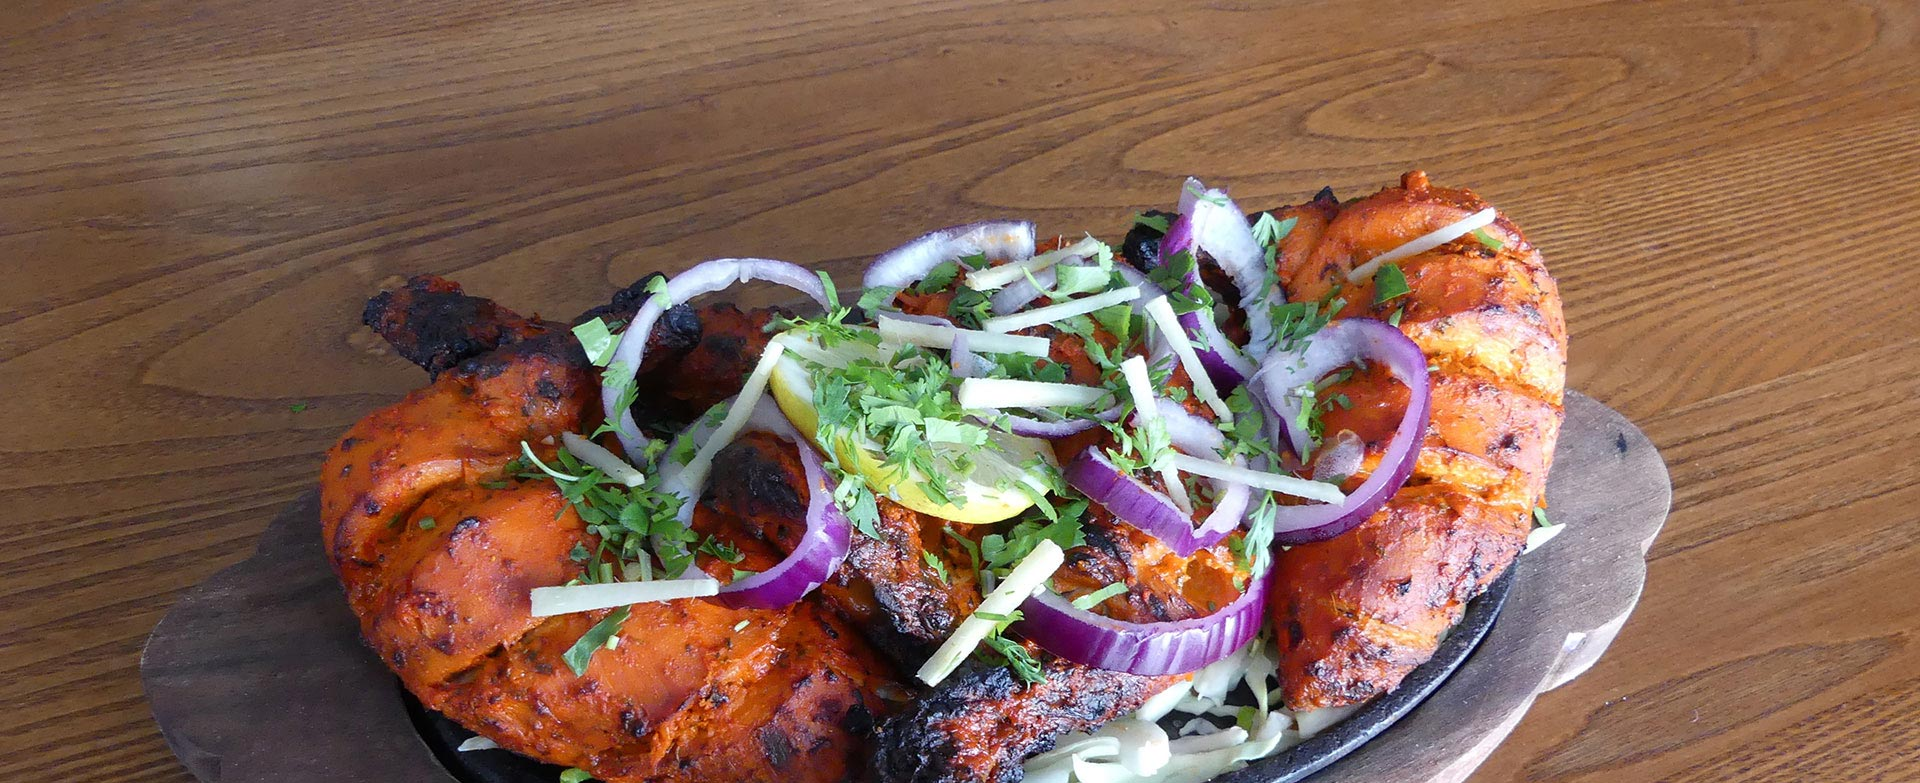 Punjabi kitchen indian restaurant bar henderson auckland for Ajadz indian cuisine auckland